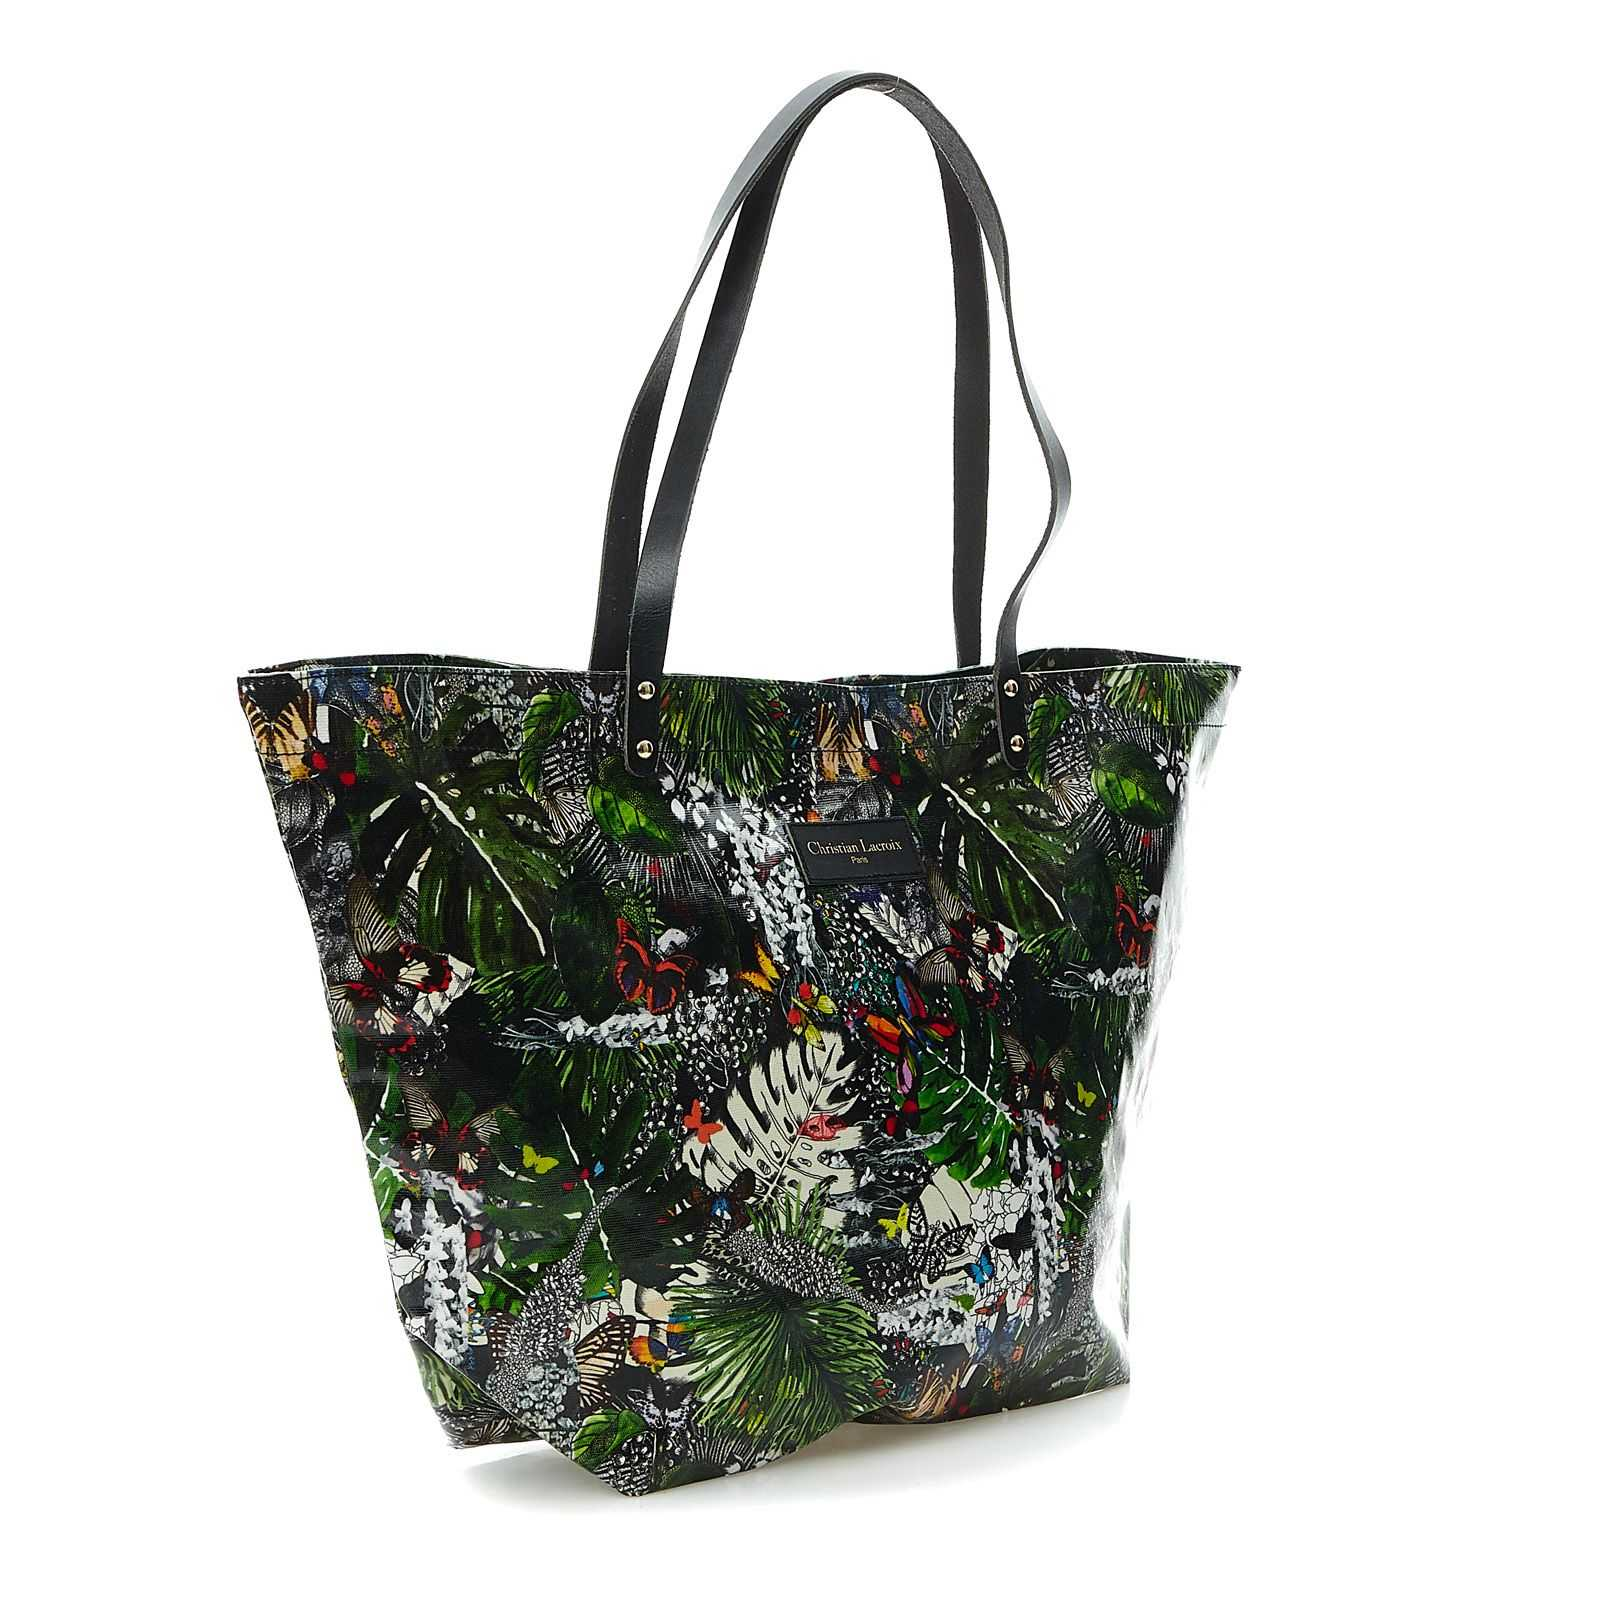 Christian lacroix shop online